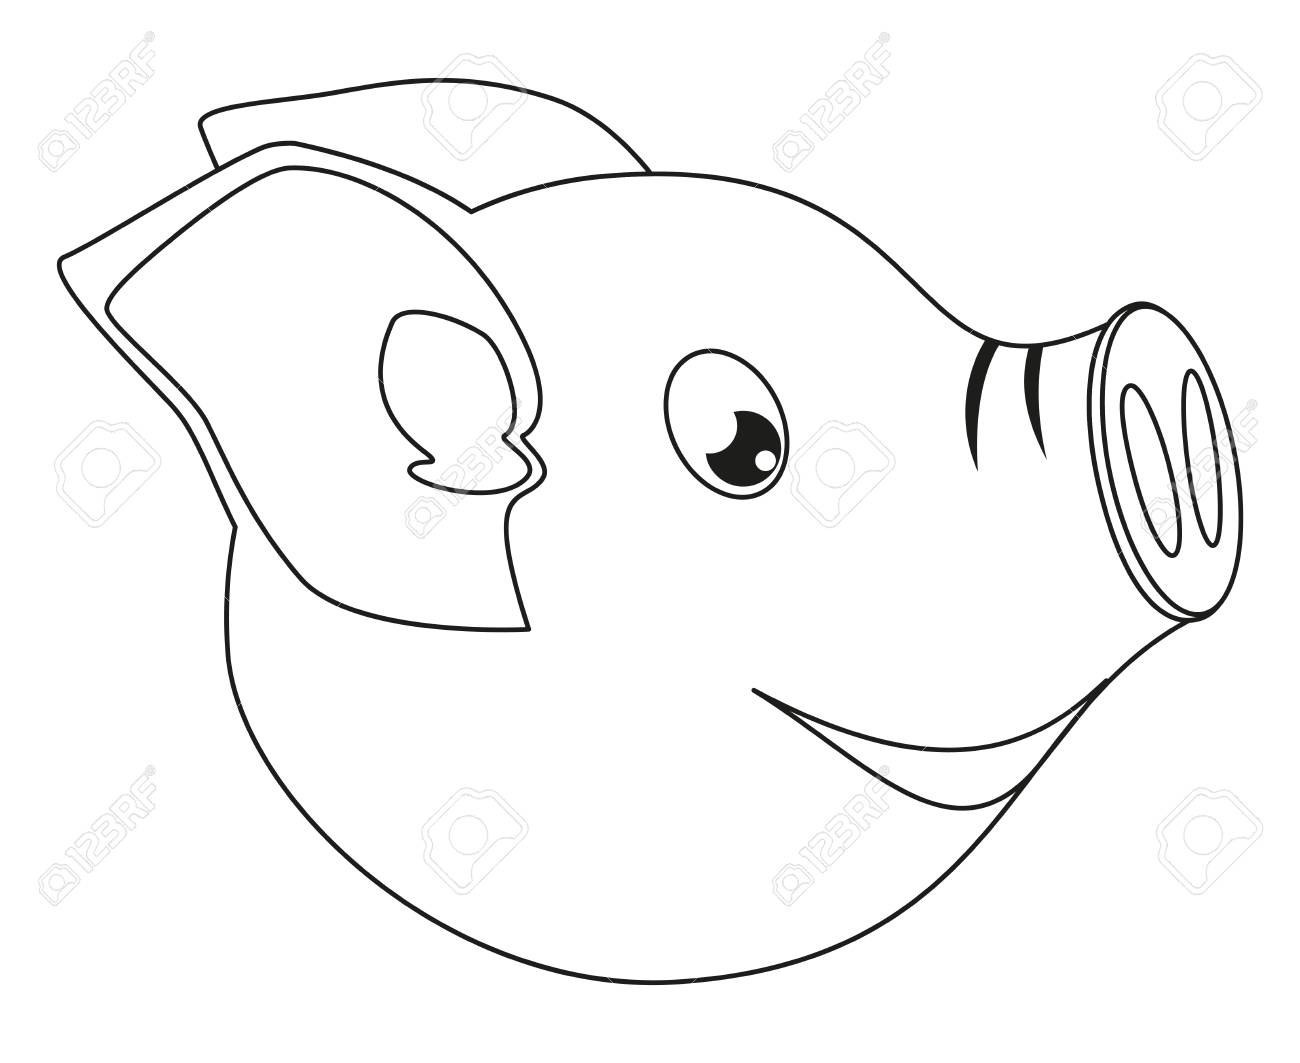 Line Art Black And White Pig Face Side View 2019 Year Chinese